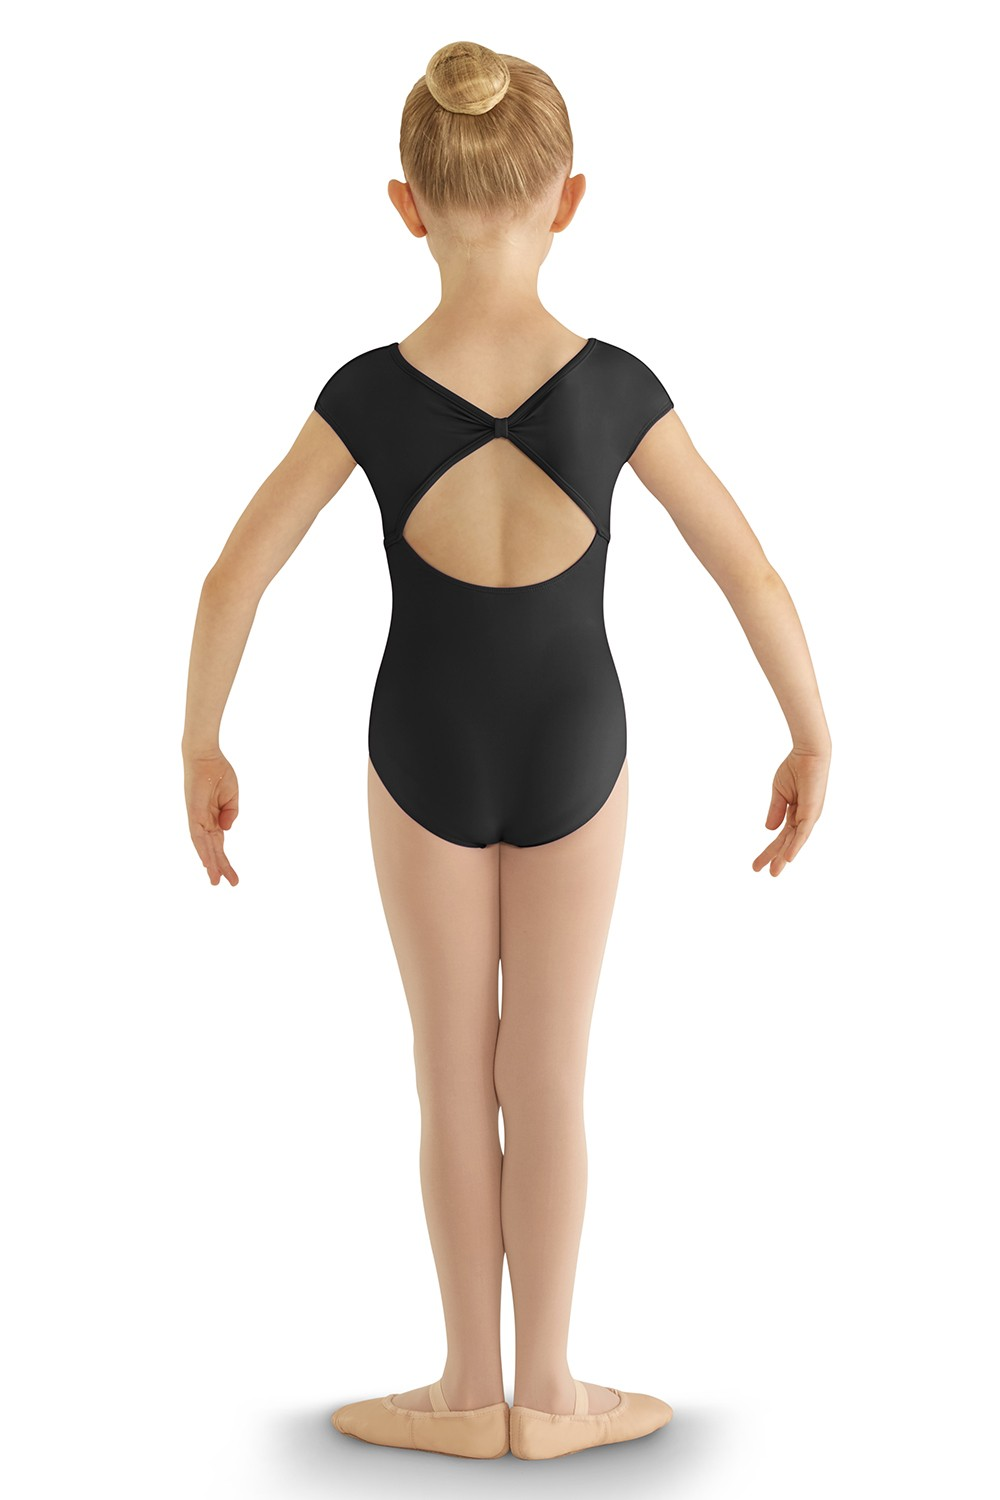 Delphinium Children's Dance Leotards